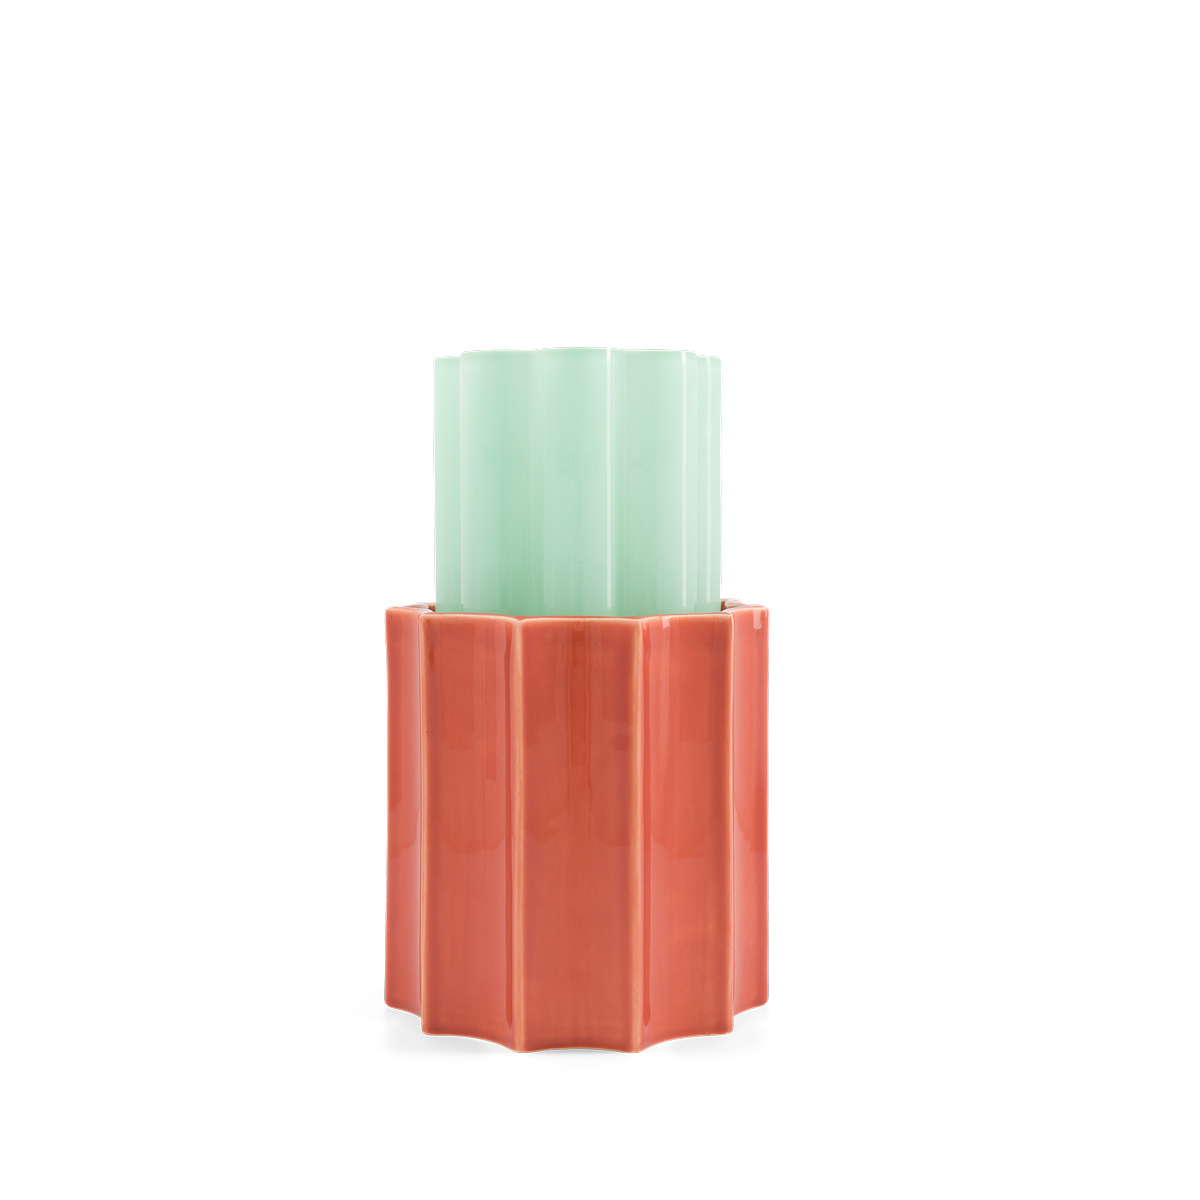 Anise Green and Terracotta Duetto Vase